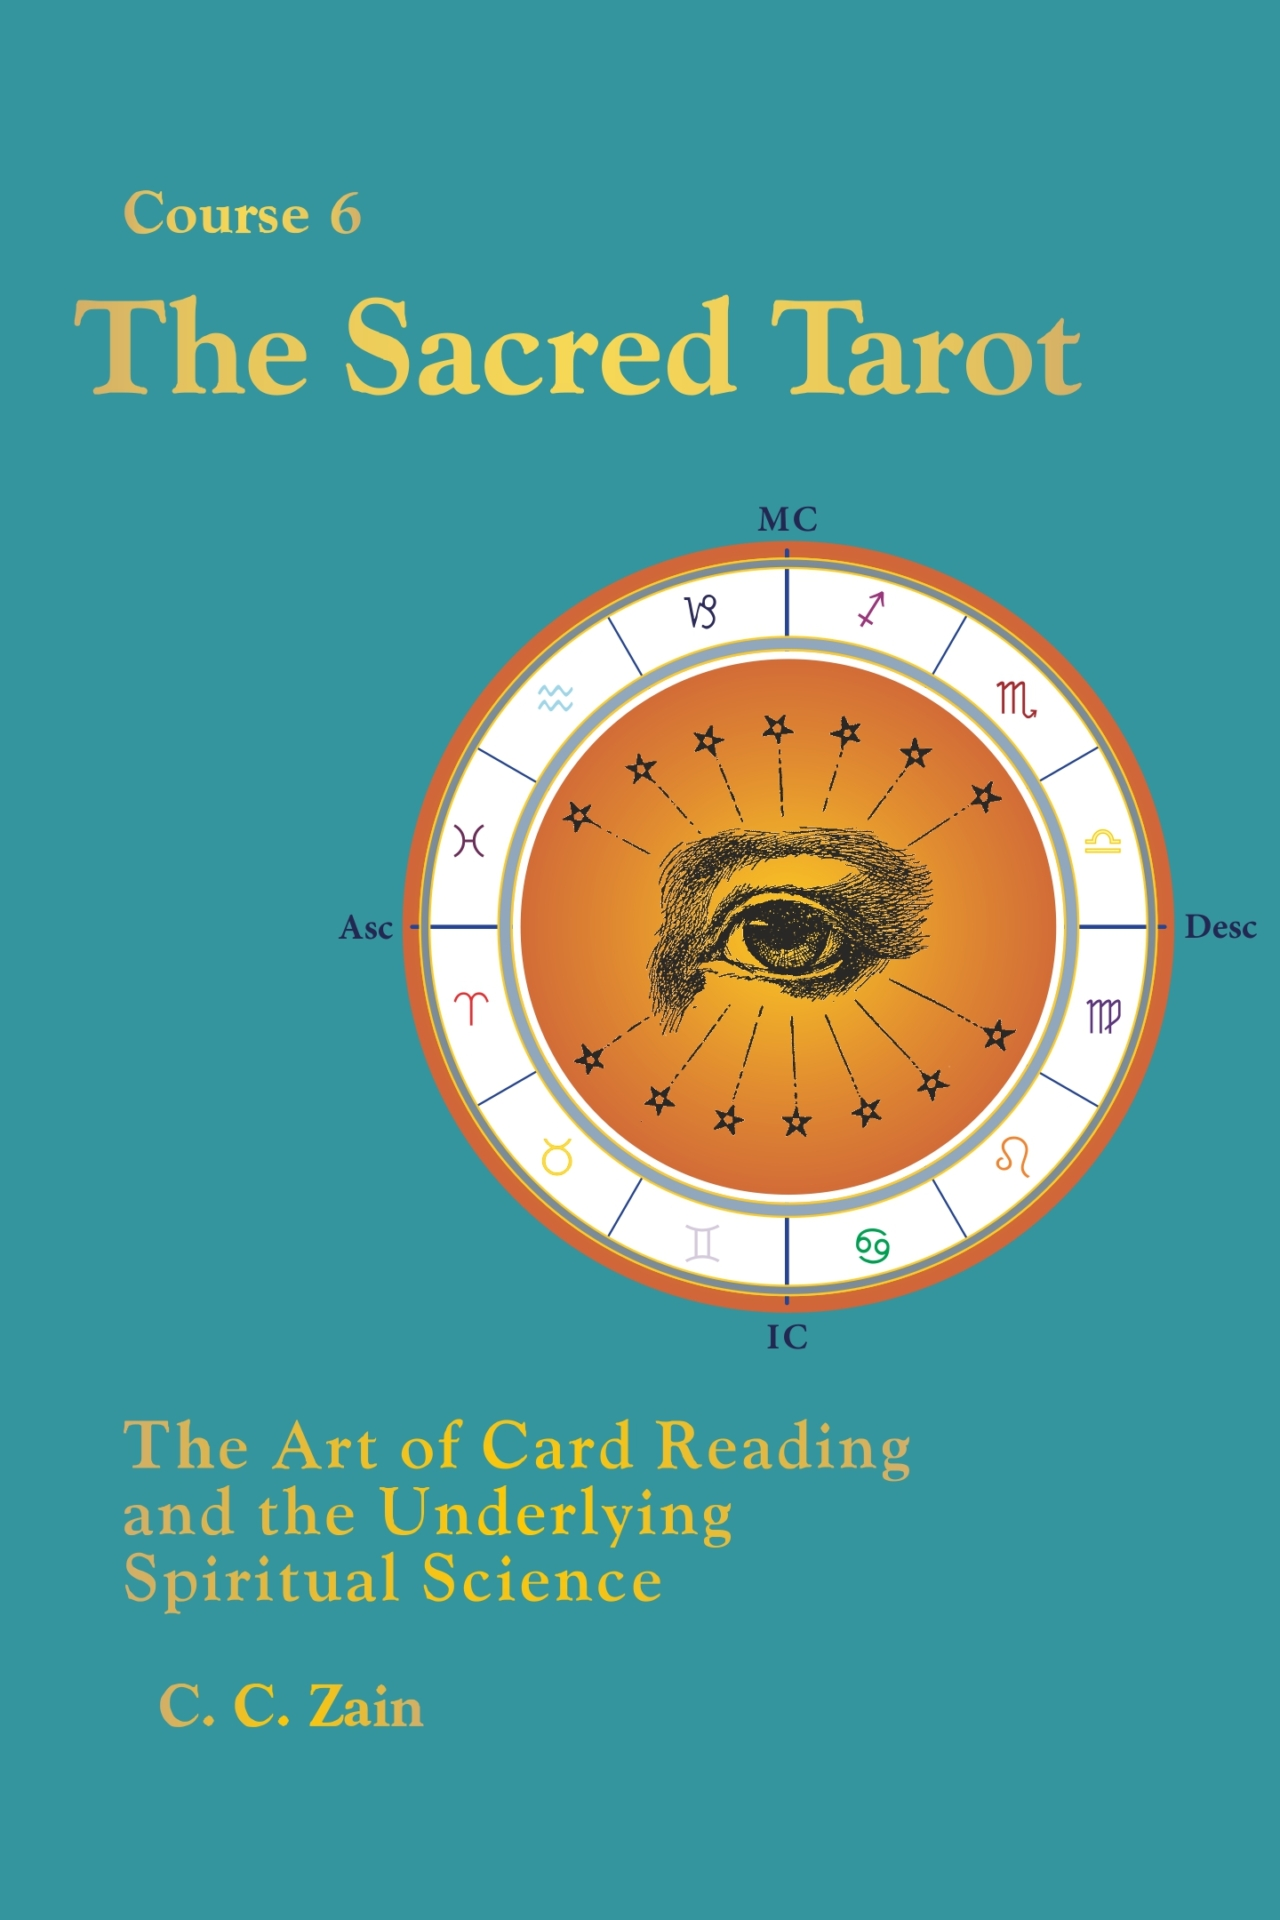 https://study.academyofhermeticarts.org/wp-content/uploads/2020/04/06_The_Sacred_Tarot_eBook_Cover-1280x1920.jpg